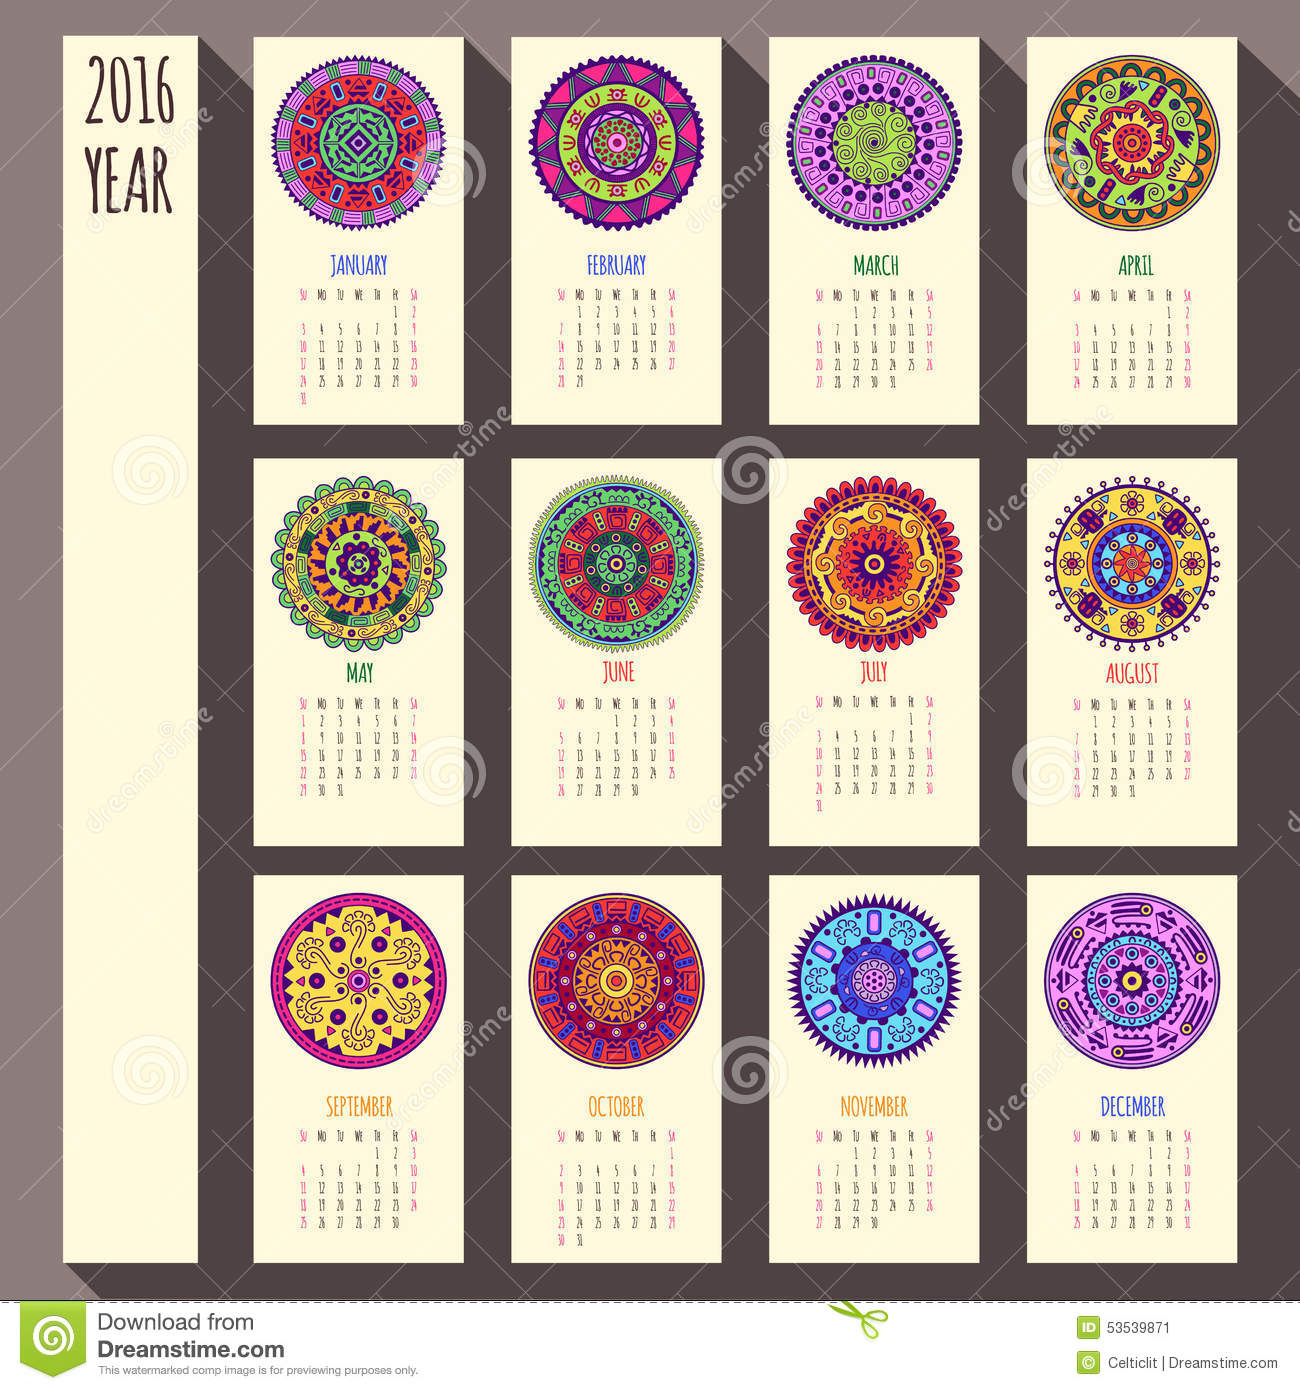 Corporate Calendar Design 2016 : Year ethnic calendar design english sunday stock